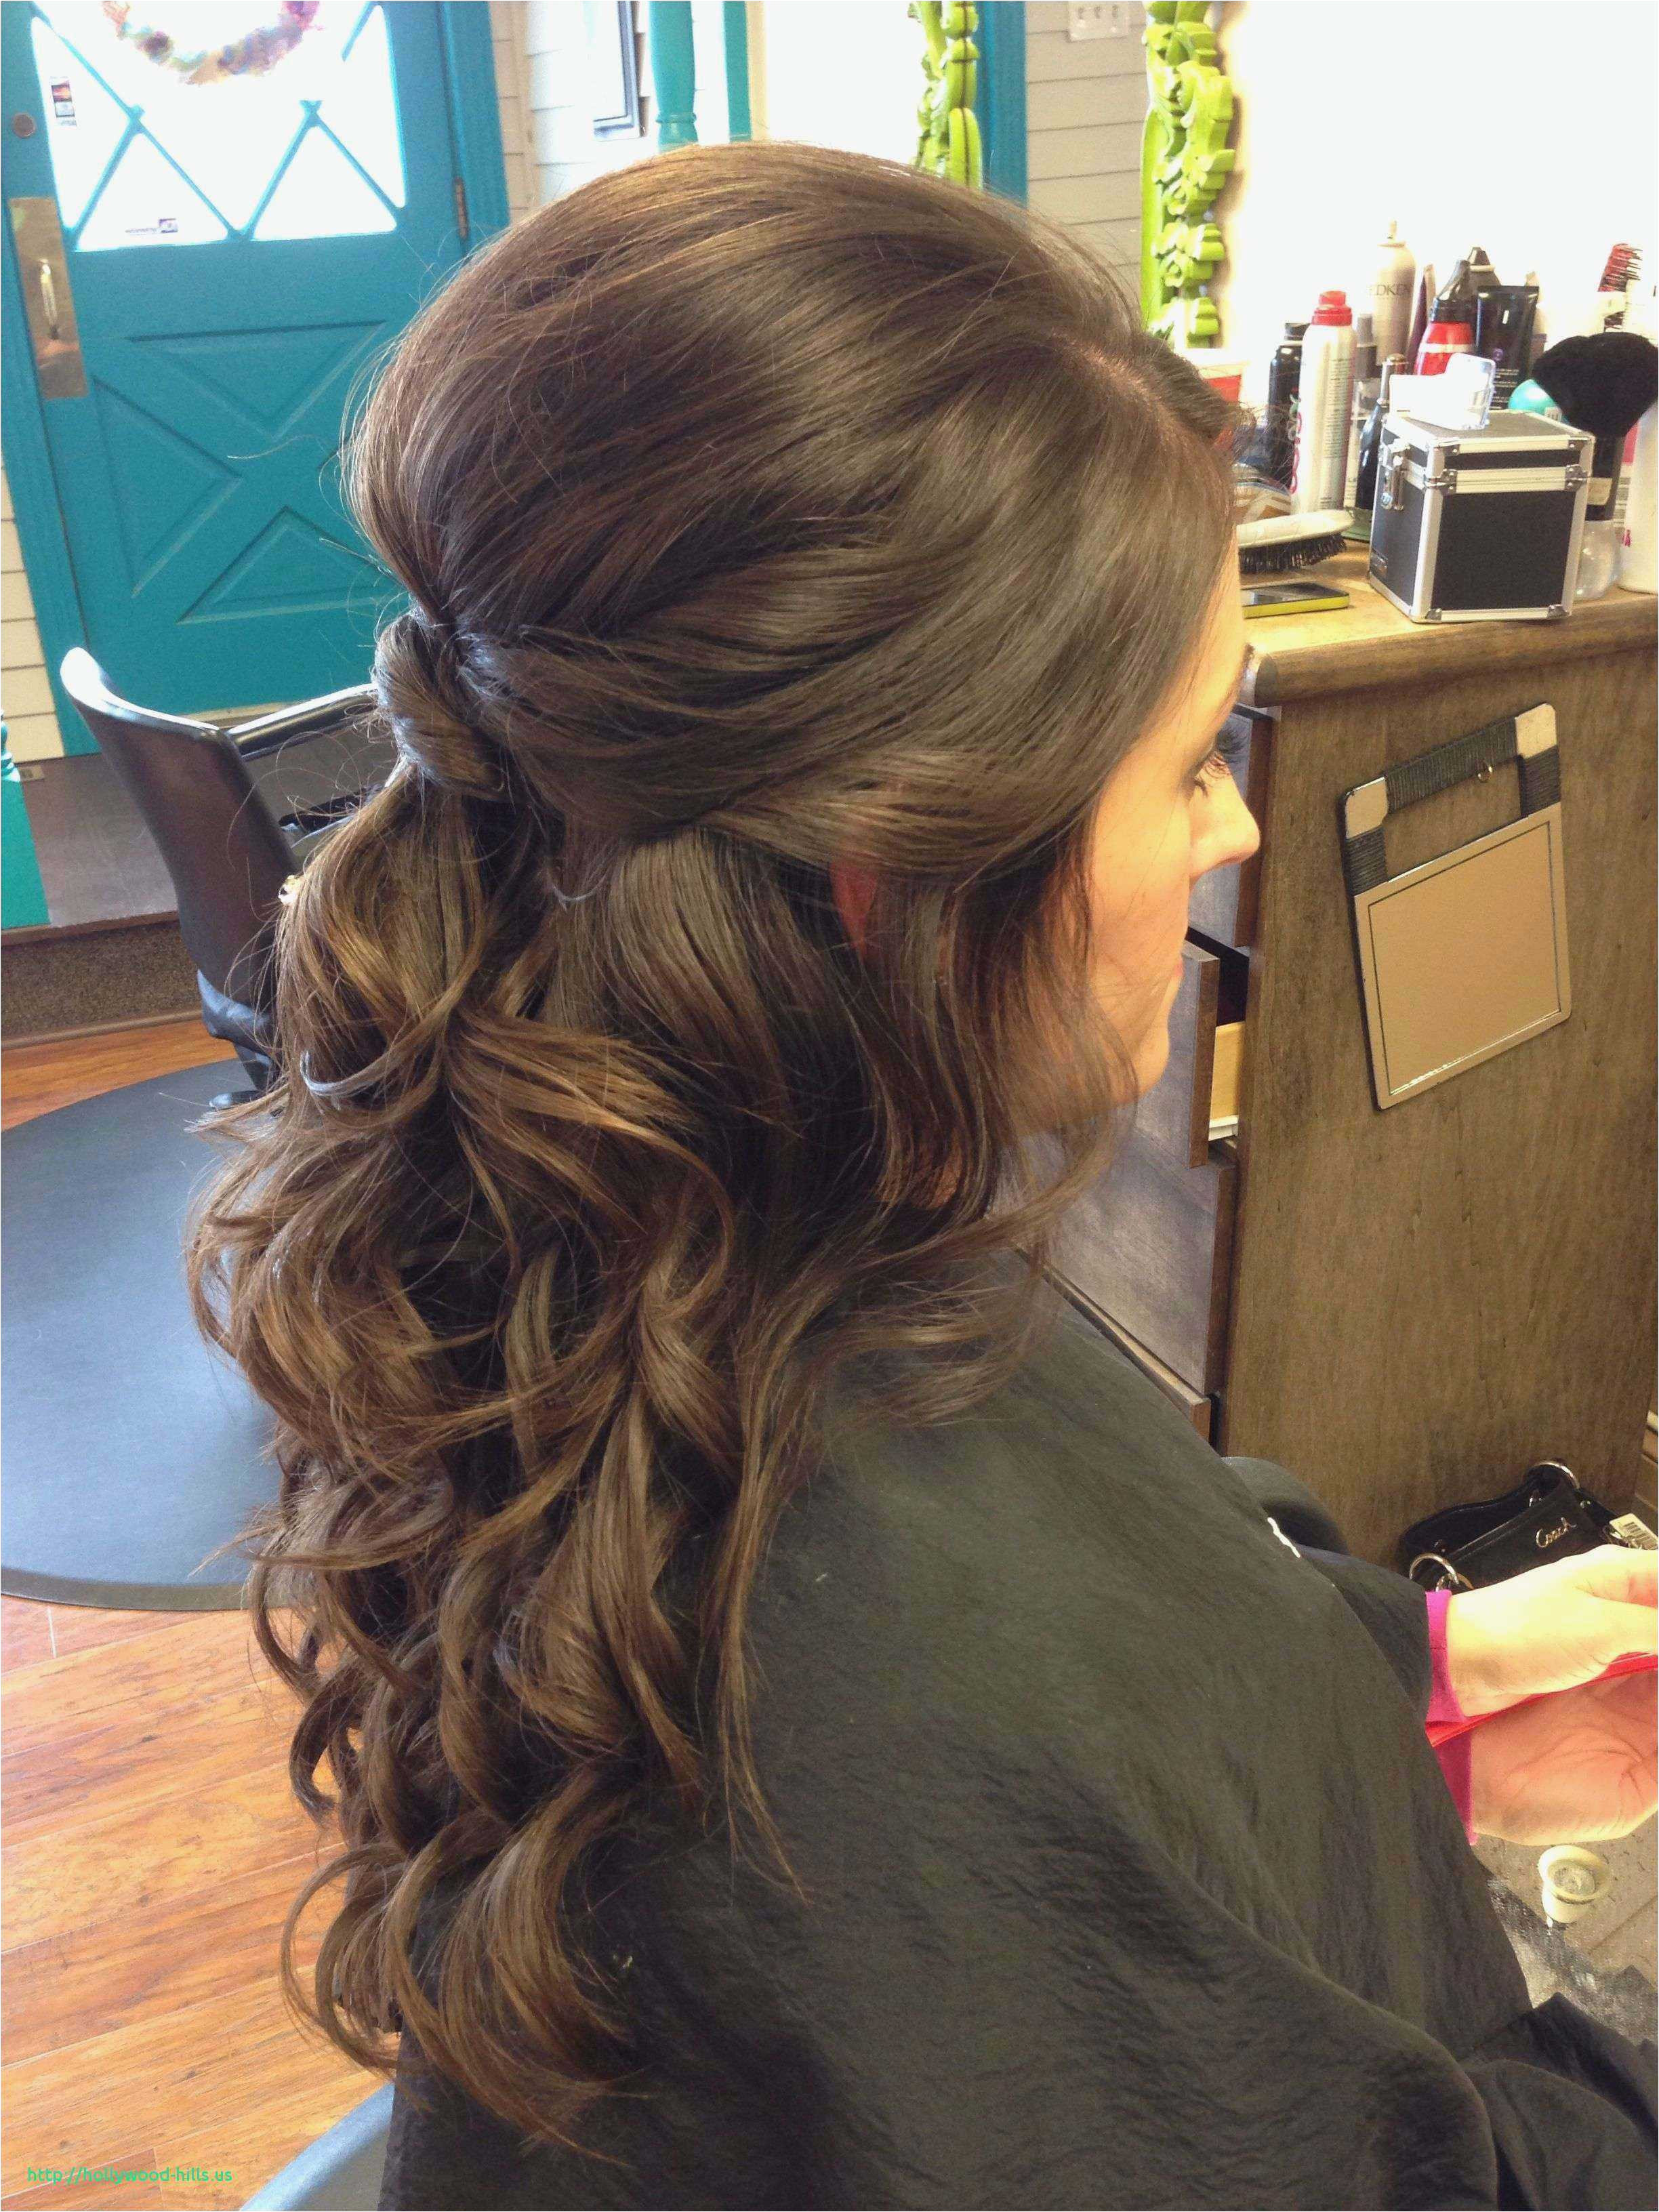 Best of Half Updos for Medium Hair Inspirational Bridal Hairstyles Half Up Long Hair Latest In